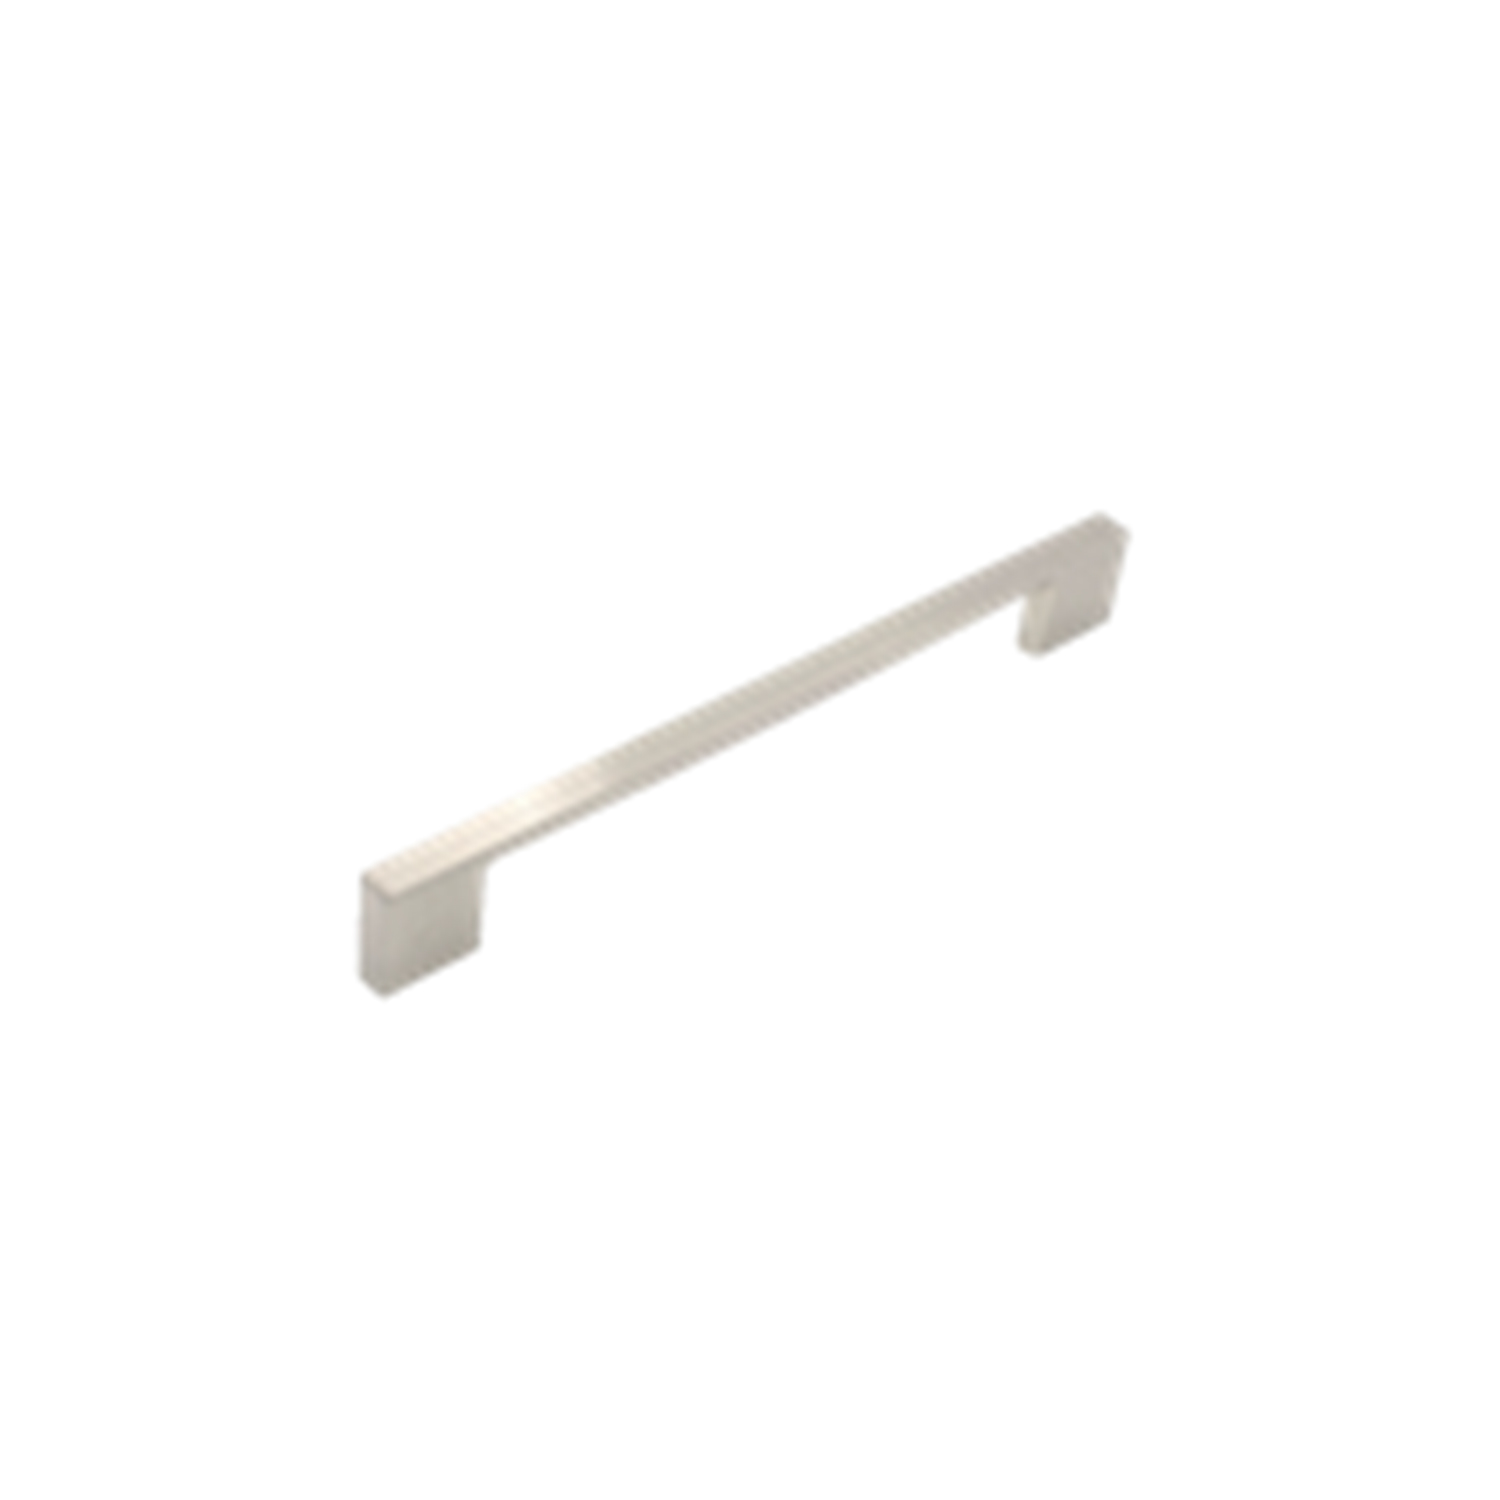 Alpha Zinc DD290 Brushed Nickel Finish Handle